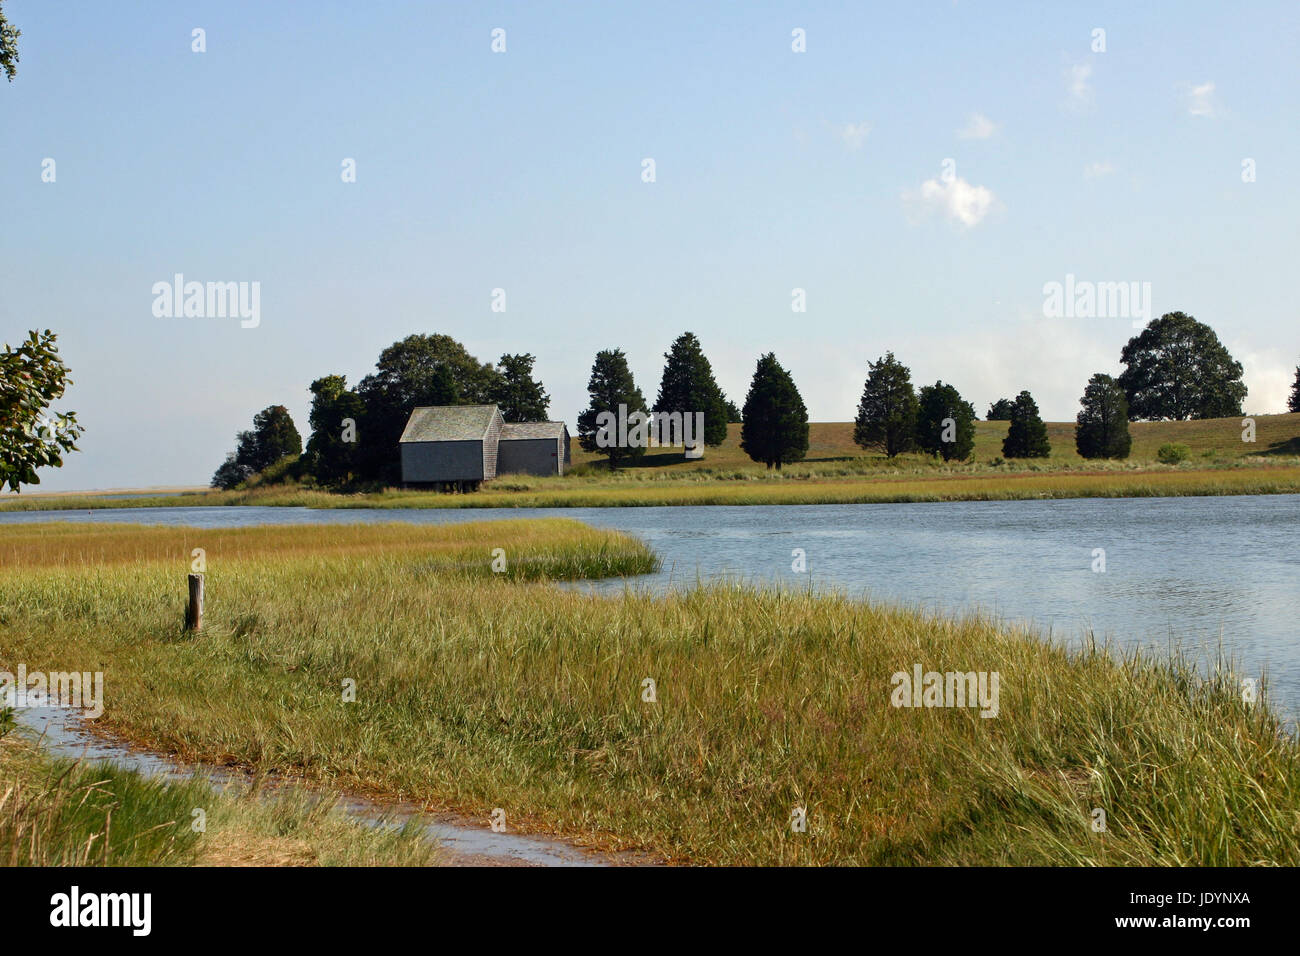 A weathered, gray-shingled shack on Salt Pond at the Cape Cod National Seashore, Eastham, Massachusetts, viewed Stock Photo